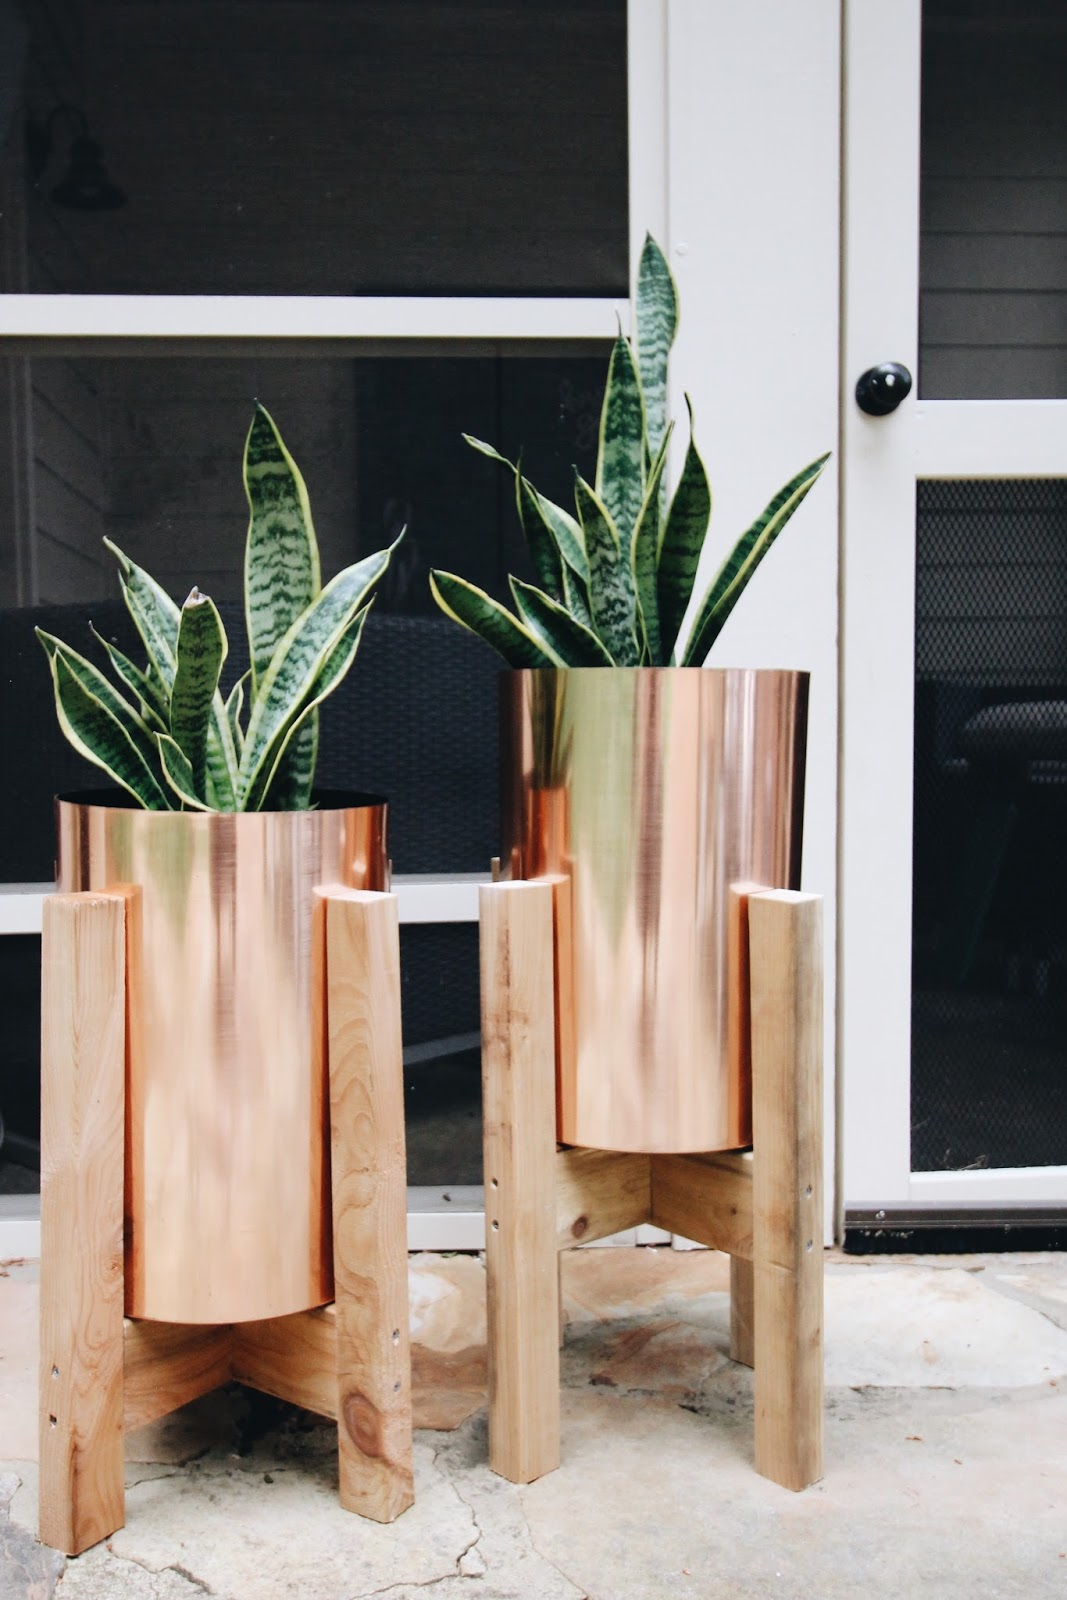 Garvin and co diy copper planters - Construire une bibliotheque en bois ...